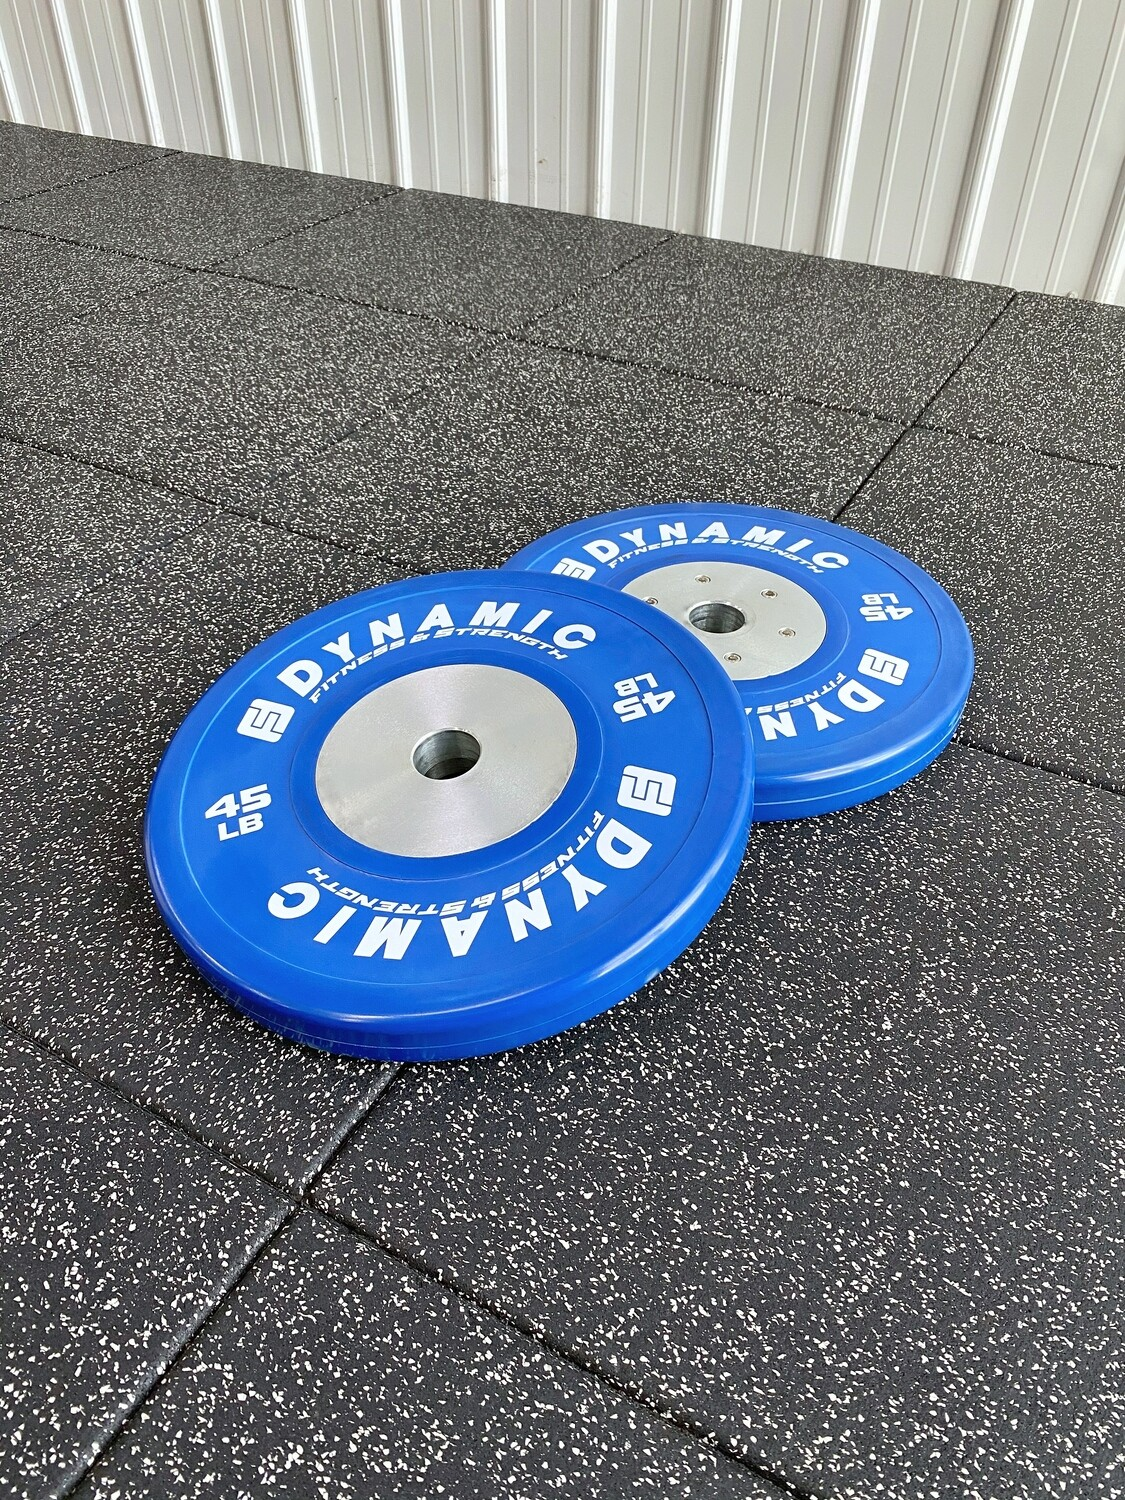 45LB Blue Competition Bumper Plate (Pair)